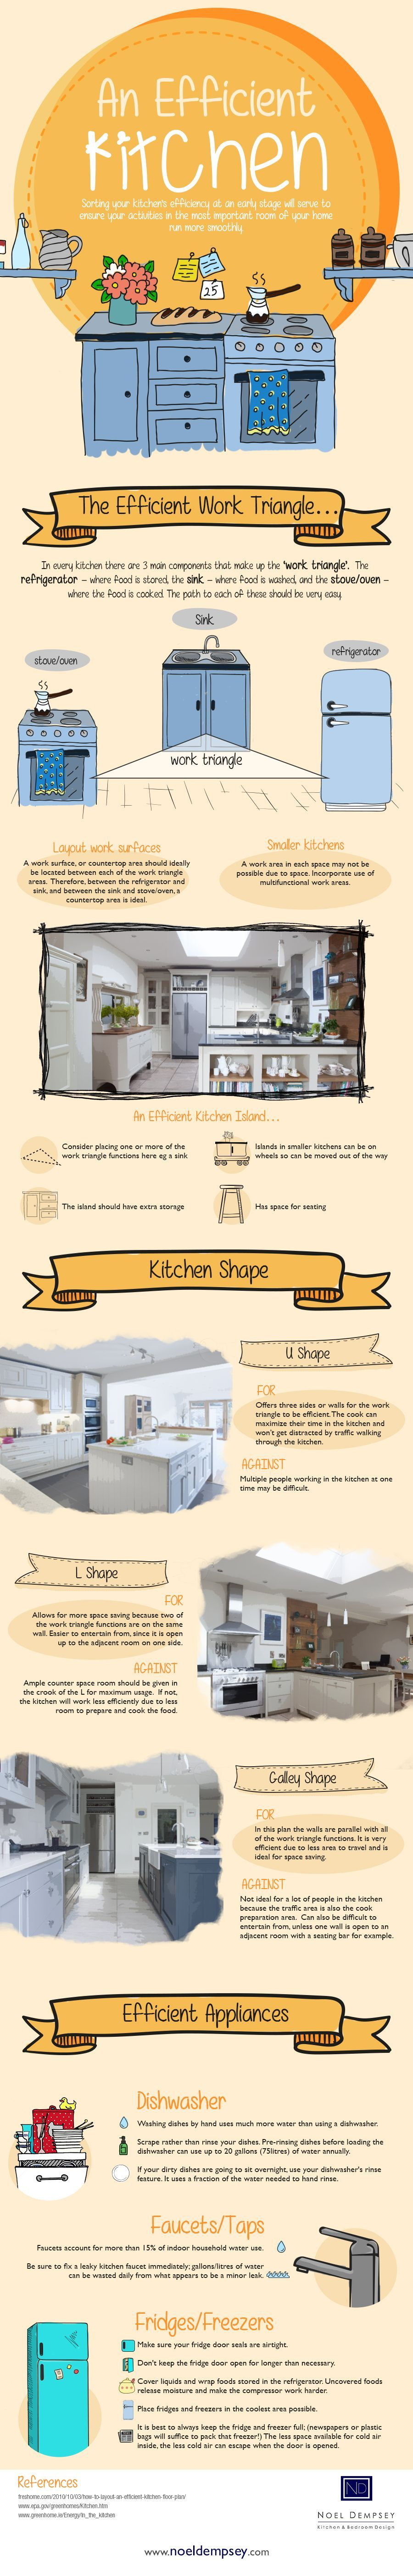 How To Arrange Your Kitchen For Highest Efficiency (Infographic) Infographics Latest Posts  Foundation Home Inspection Infographic Kitchen Roofing Winnipeg